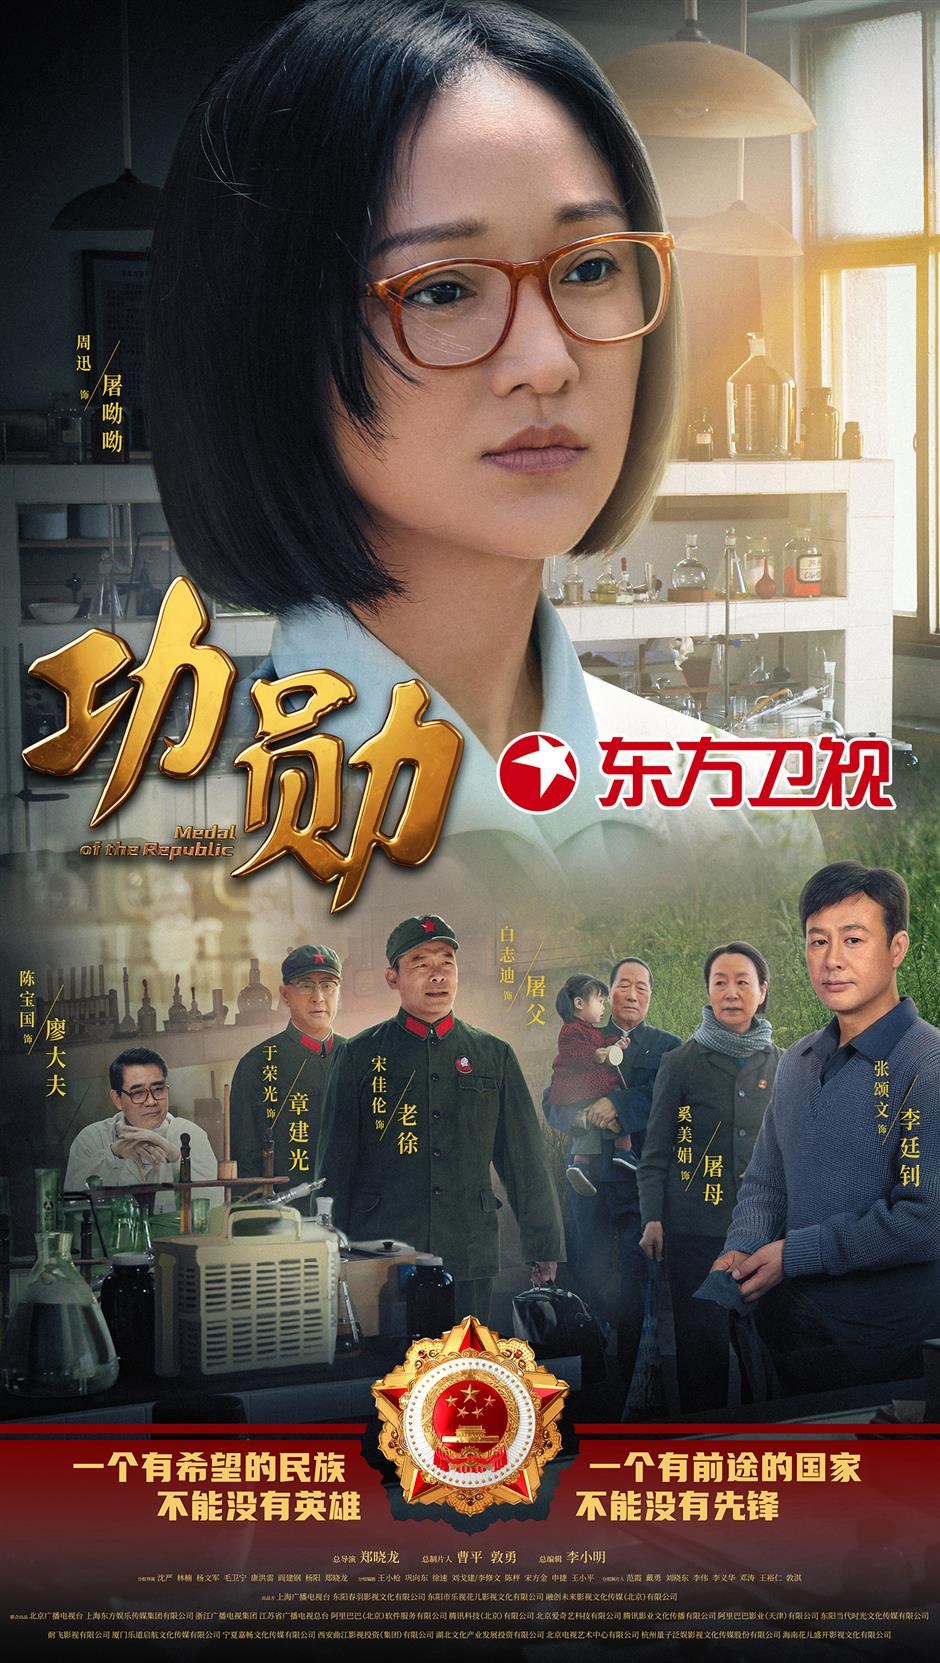 New TV series pays tribute to winners of China's highest honor